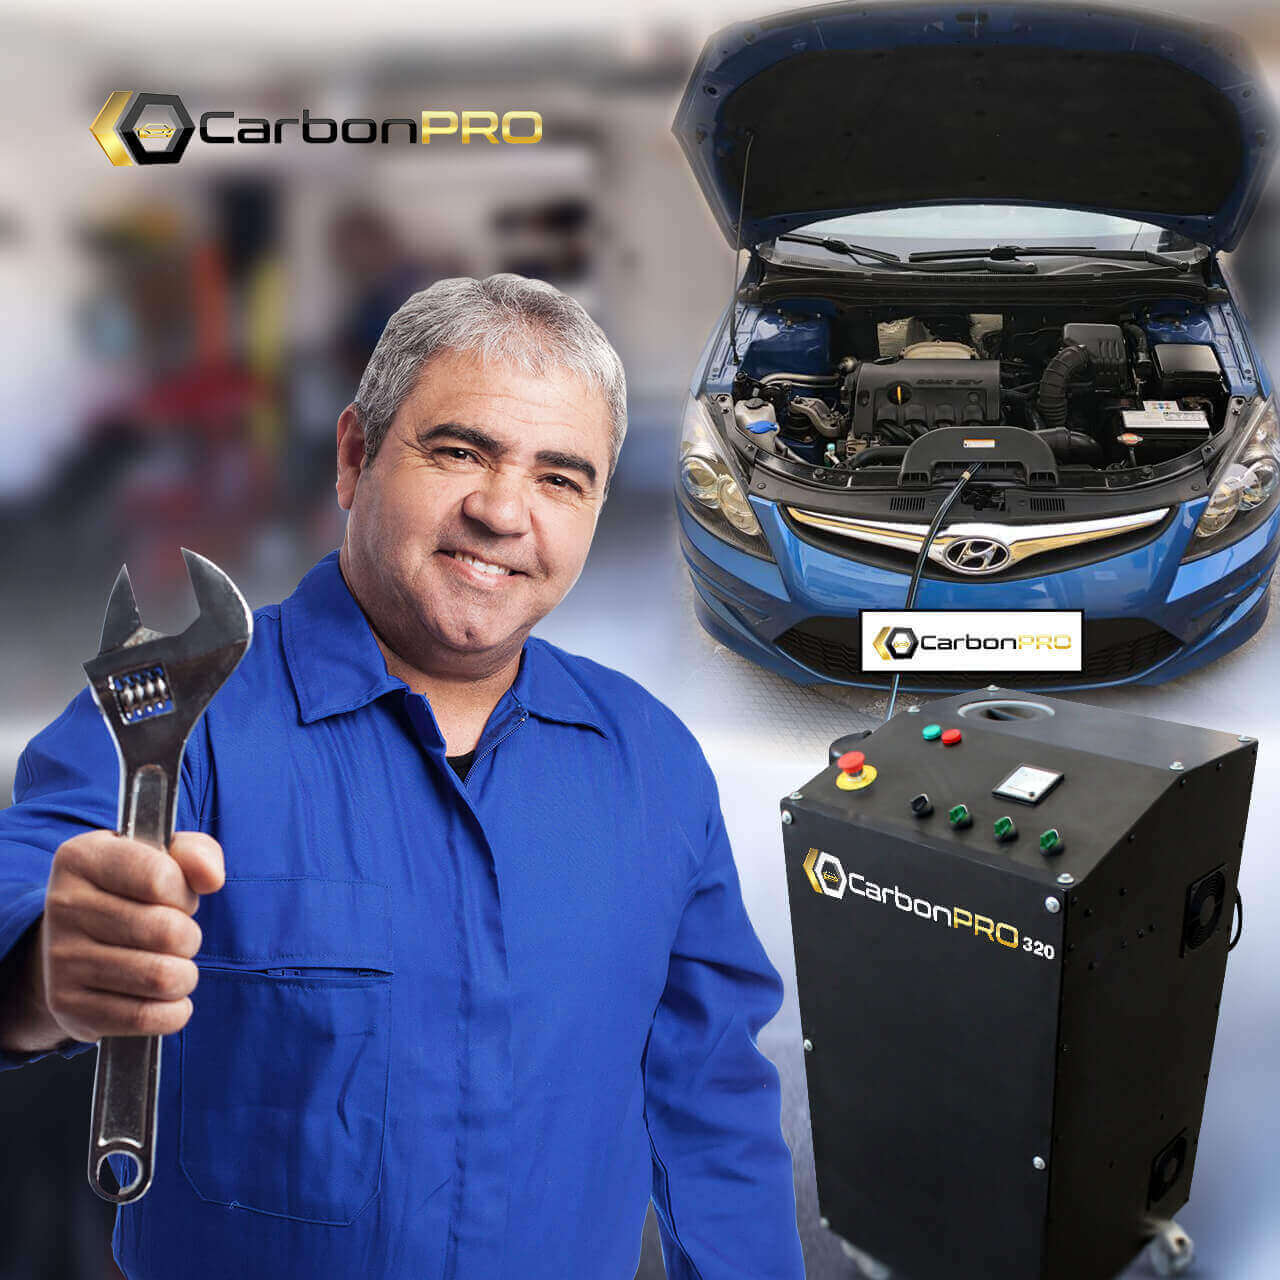 CarbonPRO-mechanics